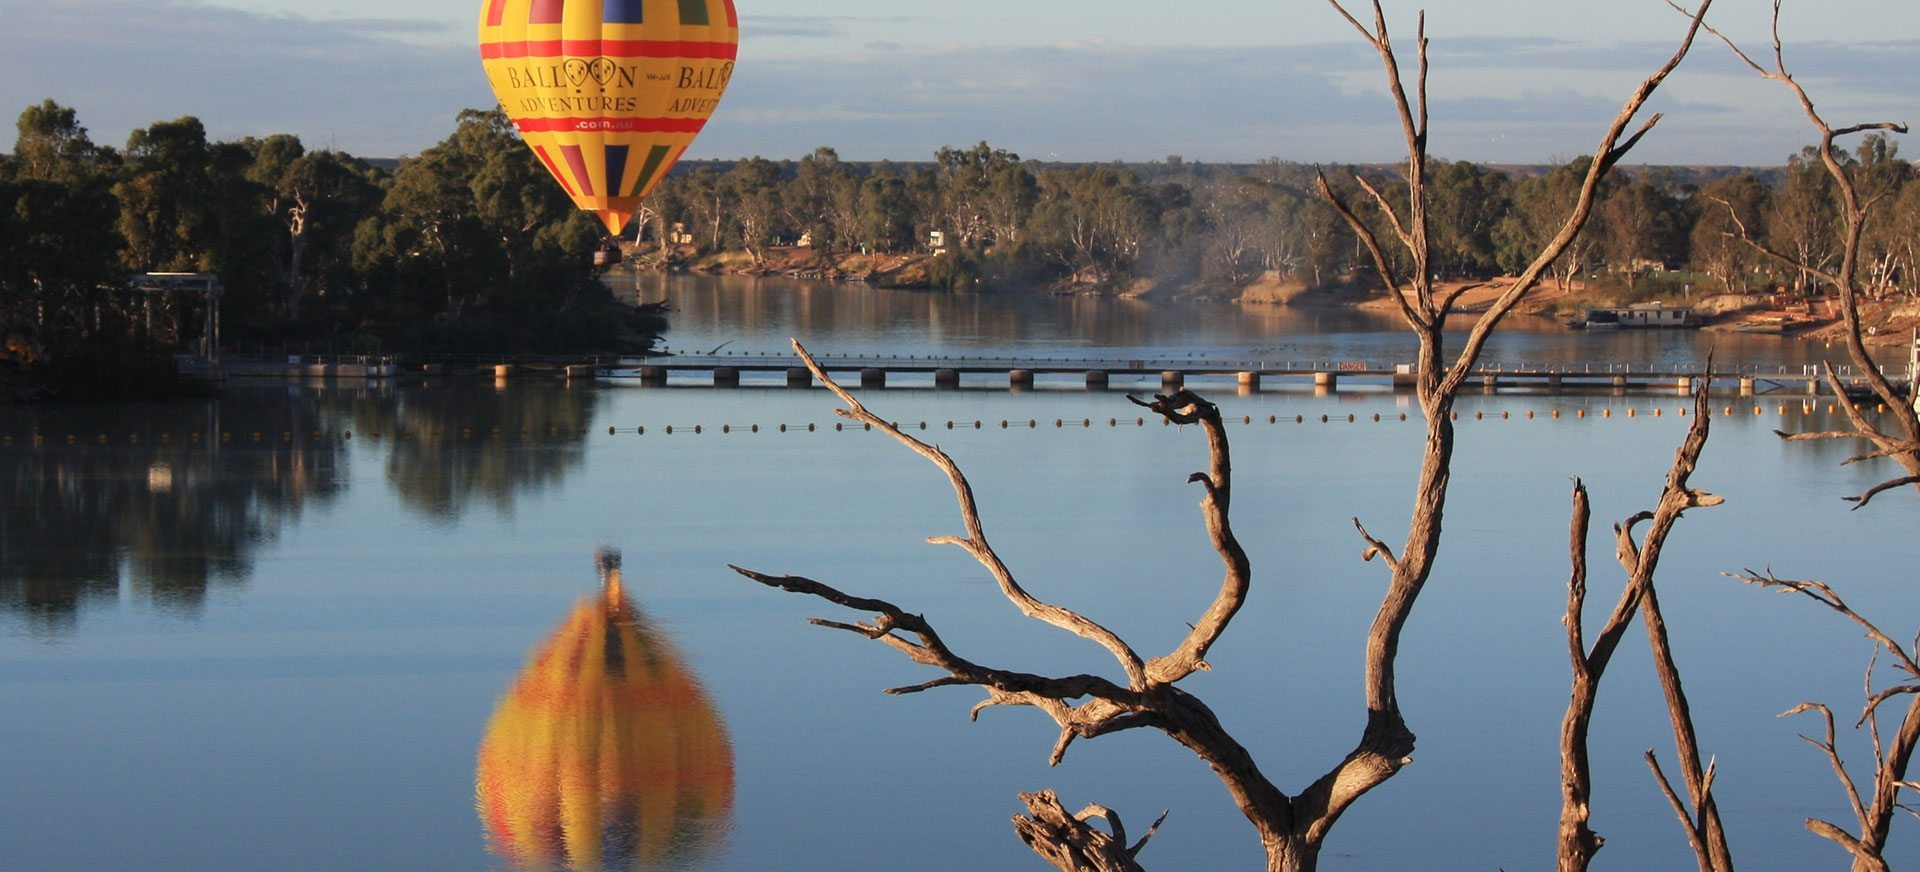 balloon-adventures-barossa-valley-hot-air-balloon-flights-over-the-river-murray-2